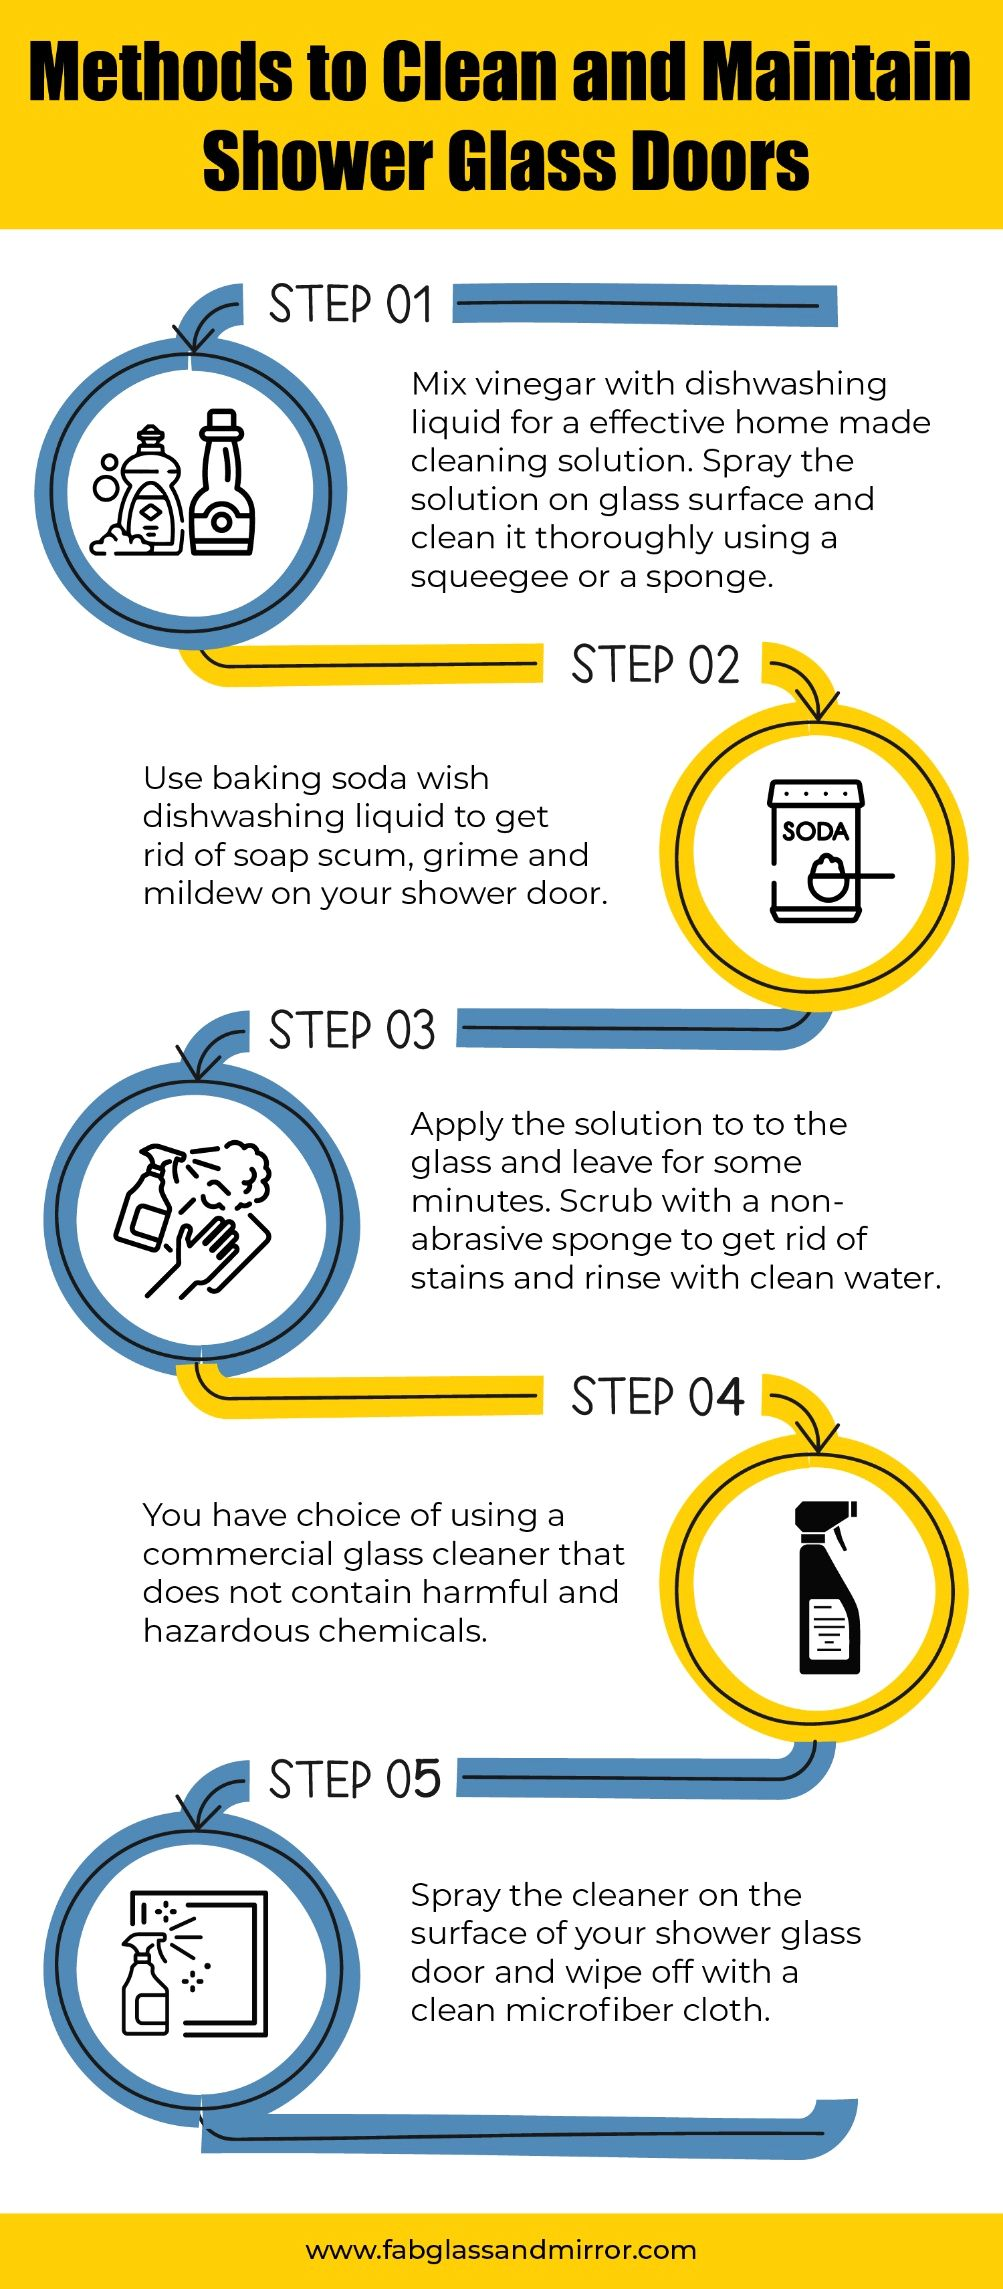 image - Tips to Maintain Glass Shower Doors to Keep Them Clean